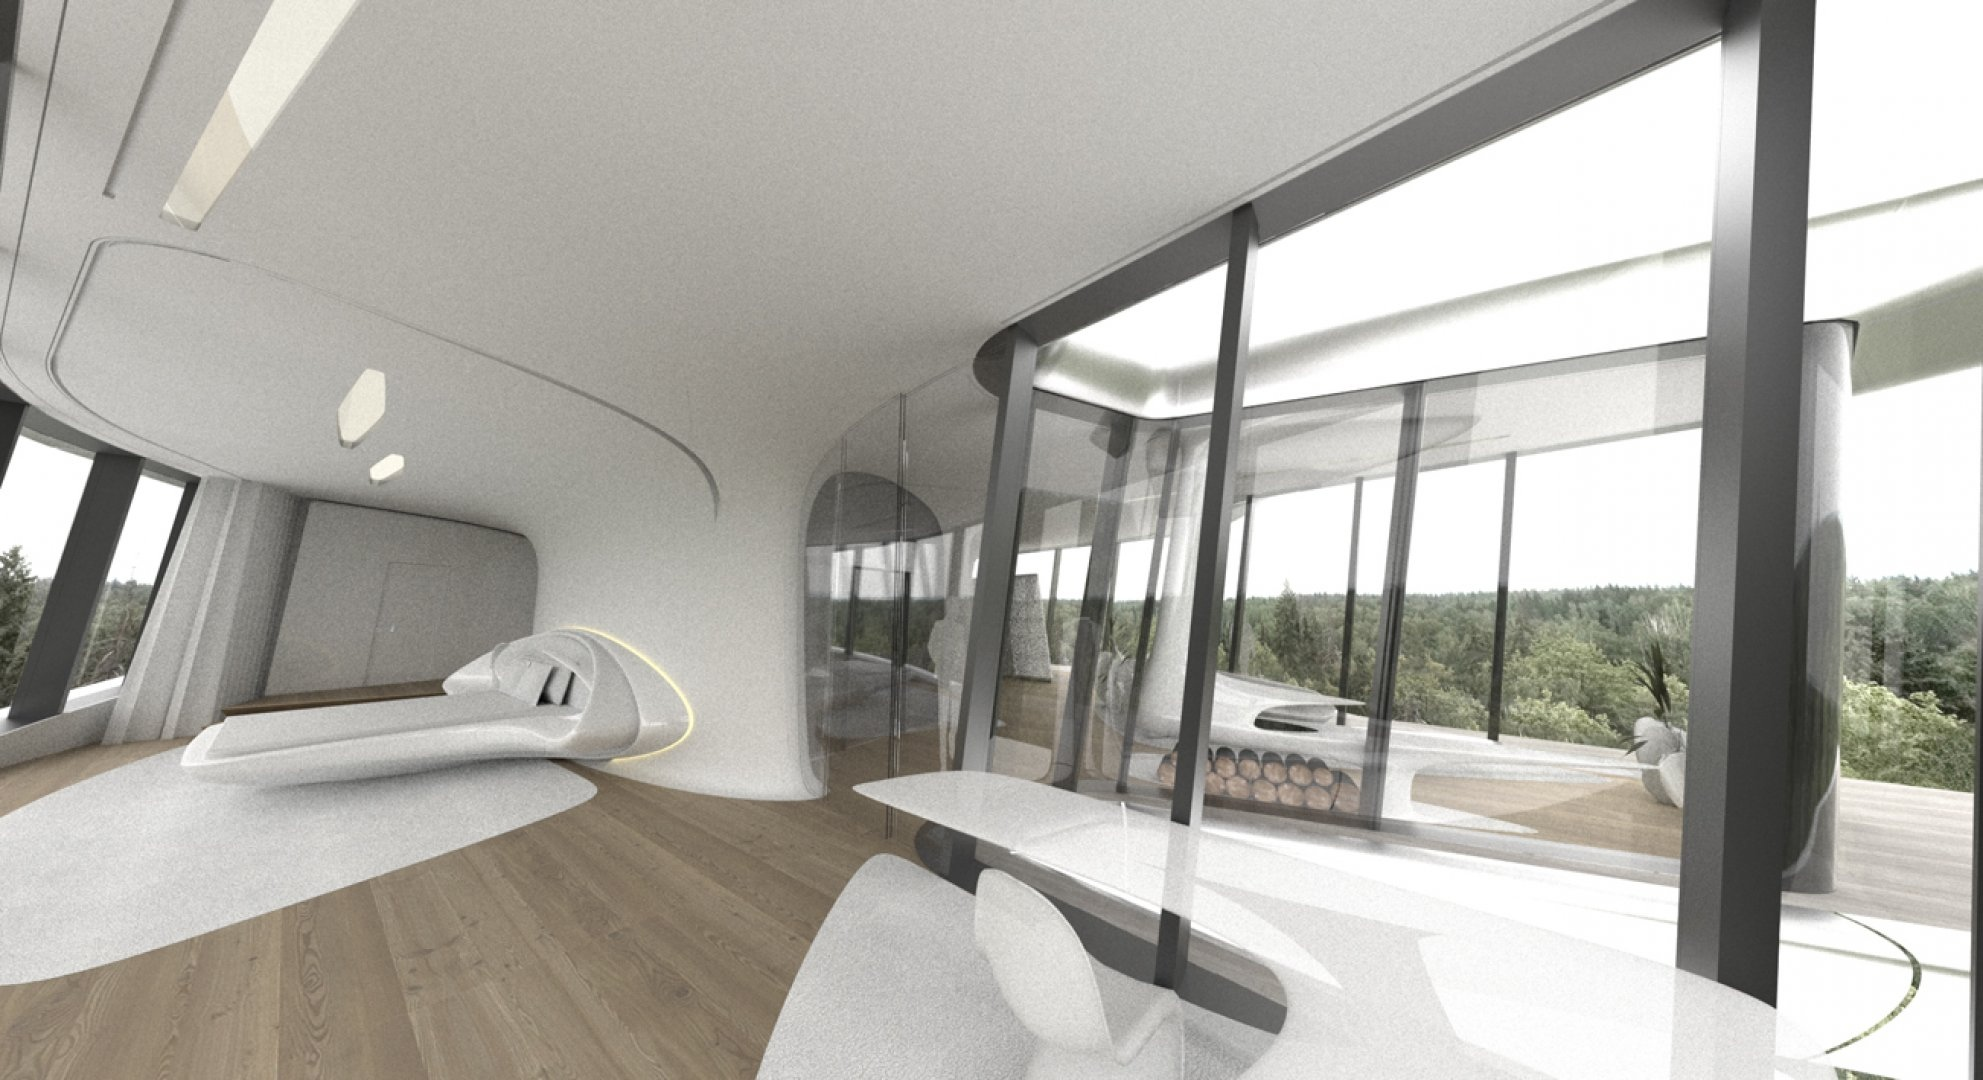 Interior Space Design Space Age Bedroom Design  Interior Design Ideas.